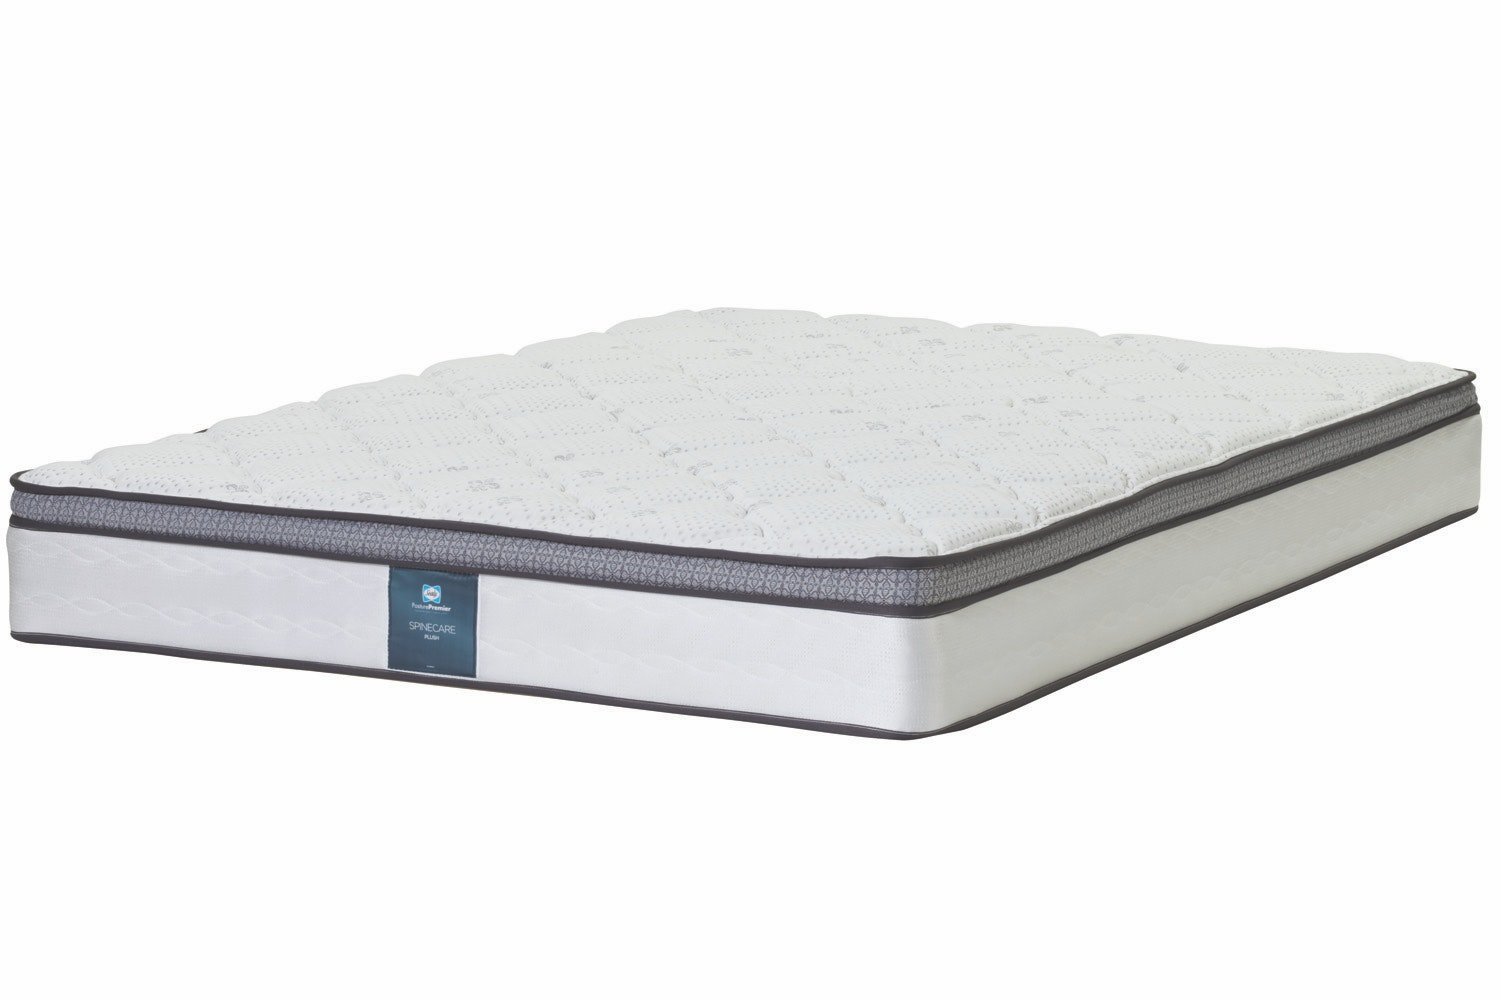 Spinecare Plush Mattress